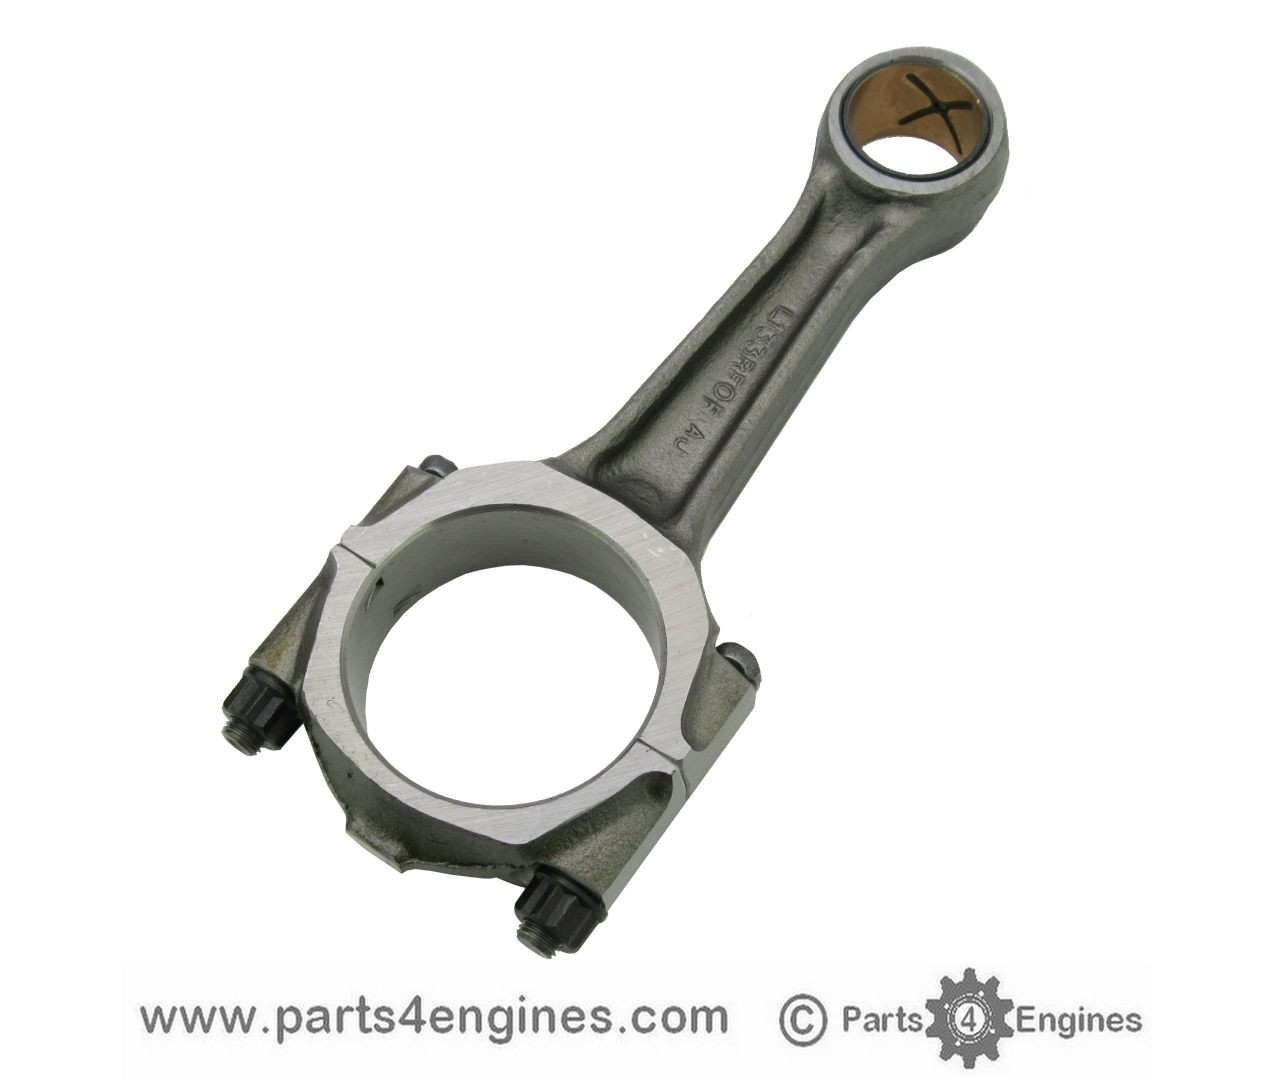 Volvo Penta MD22 Connecting rod, from parts4engines.com